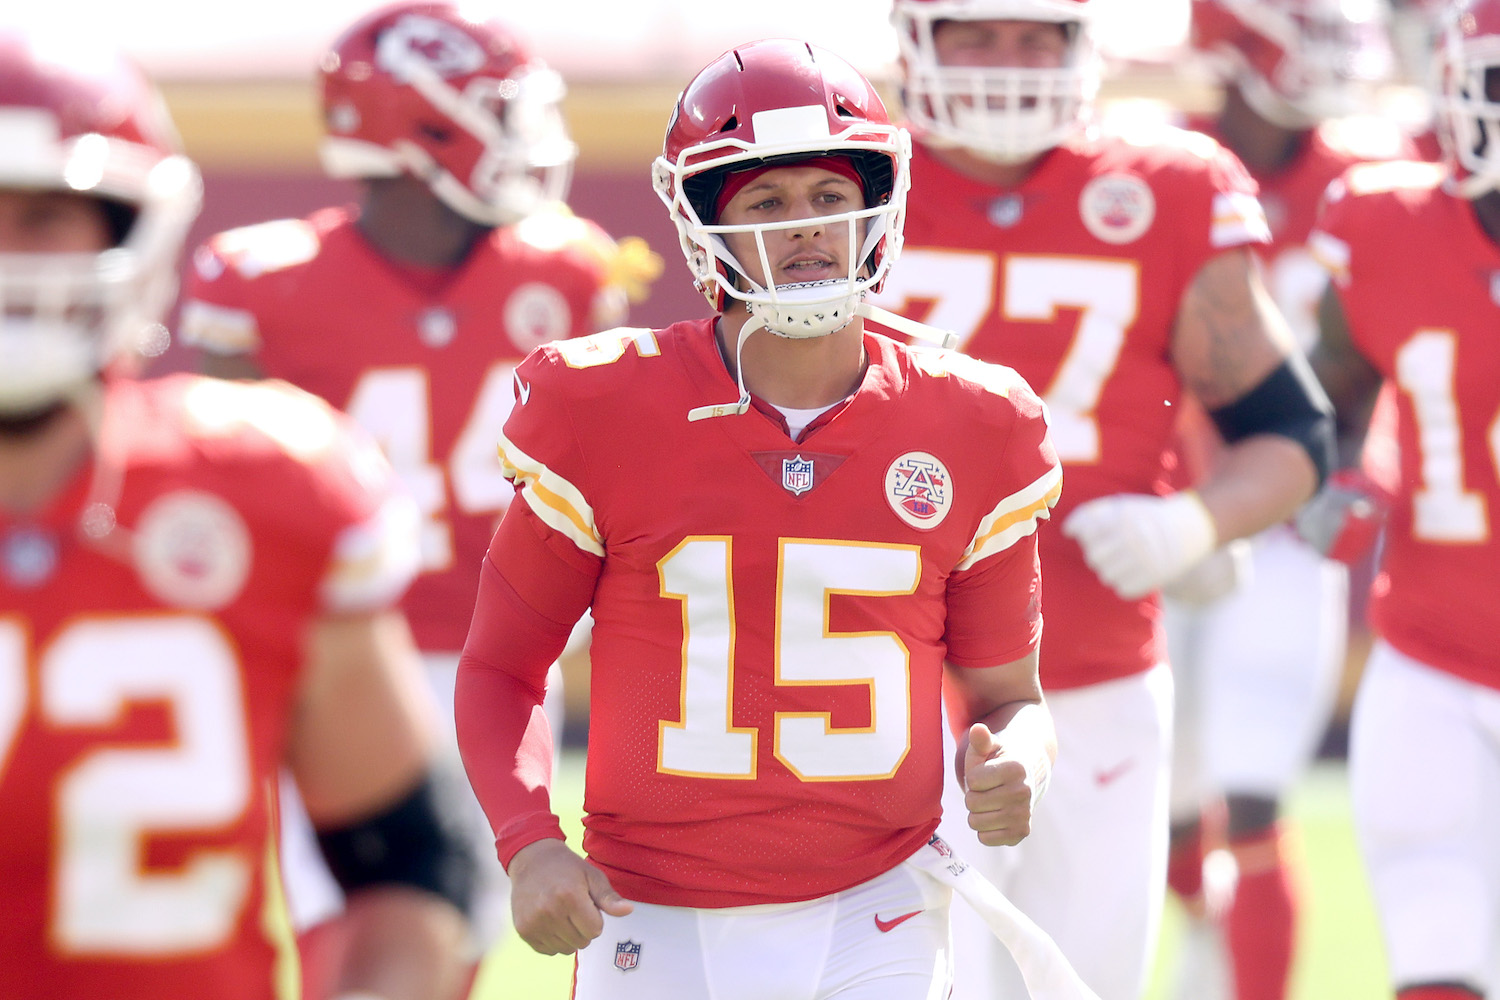 Patrick Mahomes inked a contract worth up to $500 million with the Chiefs, but money and Super Bowls aren't the only reasons he wants to stay in Kansas City.